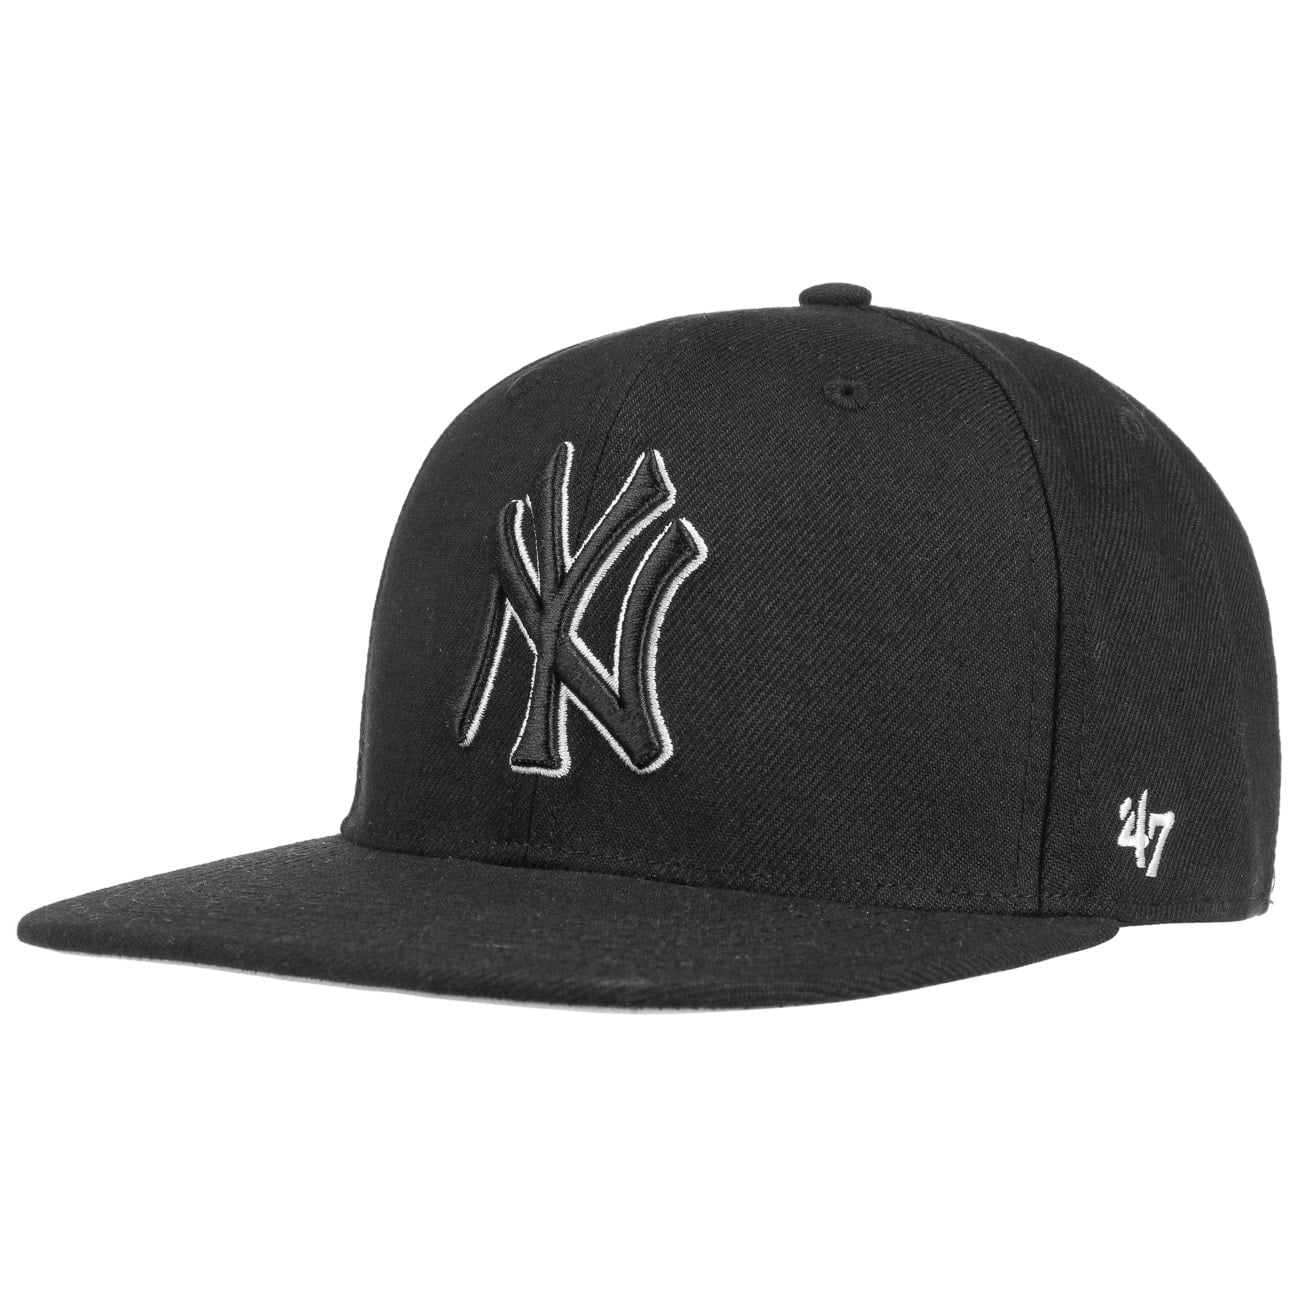 Gorra Captain Sureshot Yankees by 47 Brand  gorra de baseball